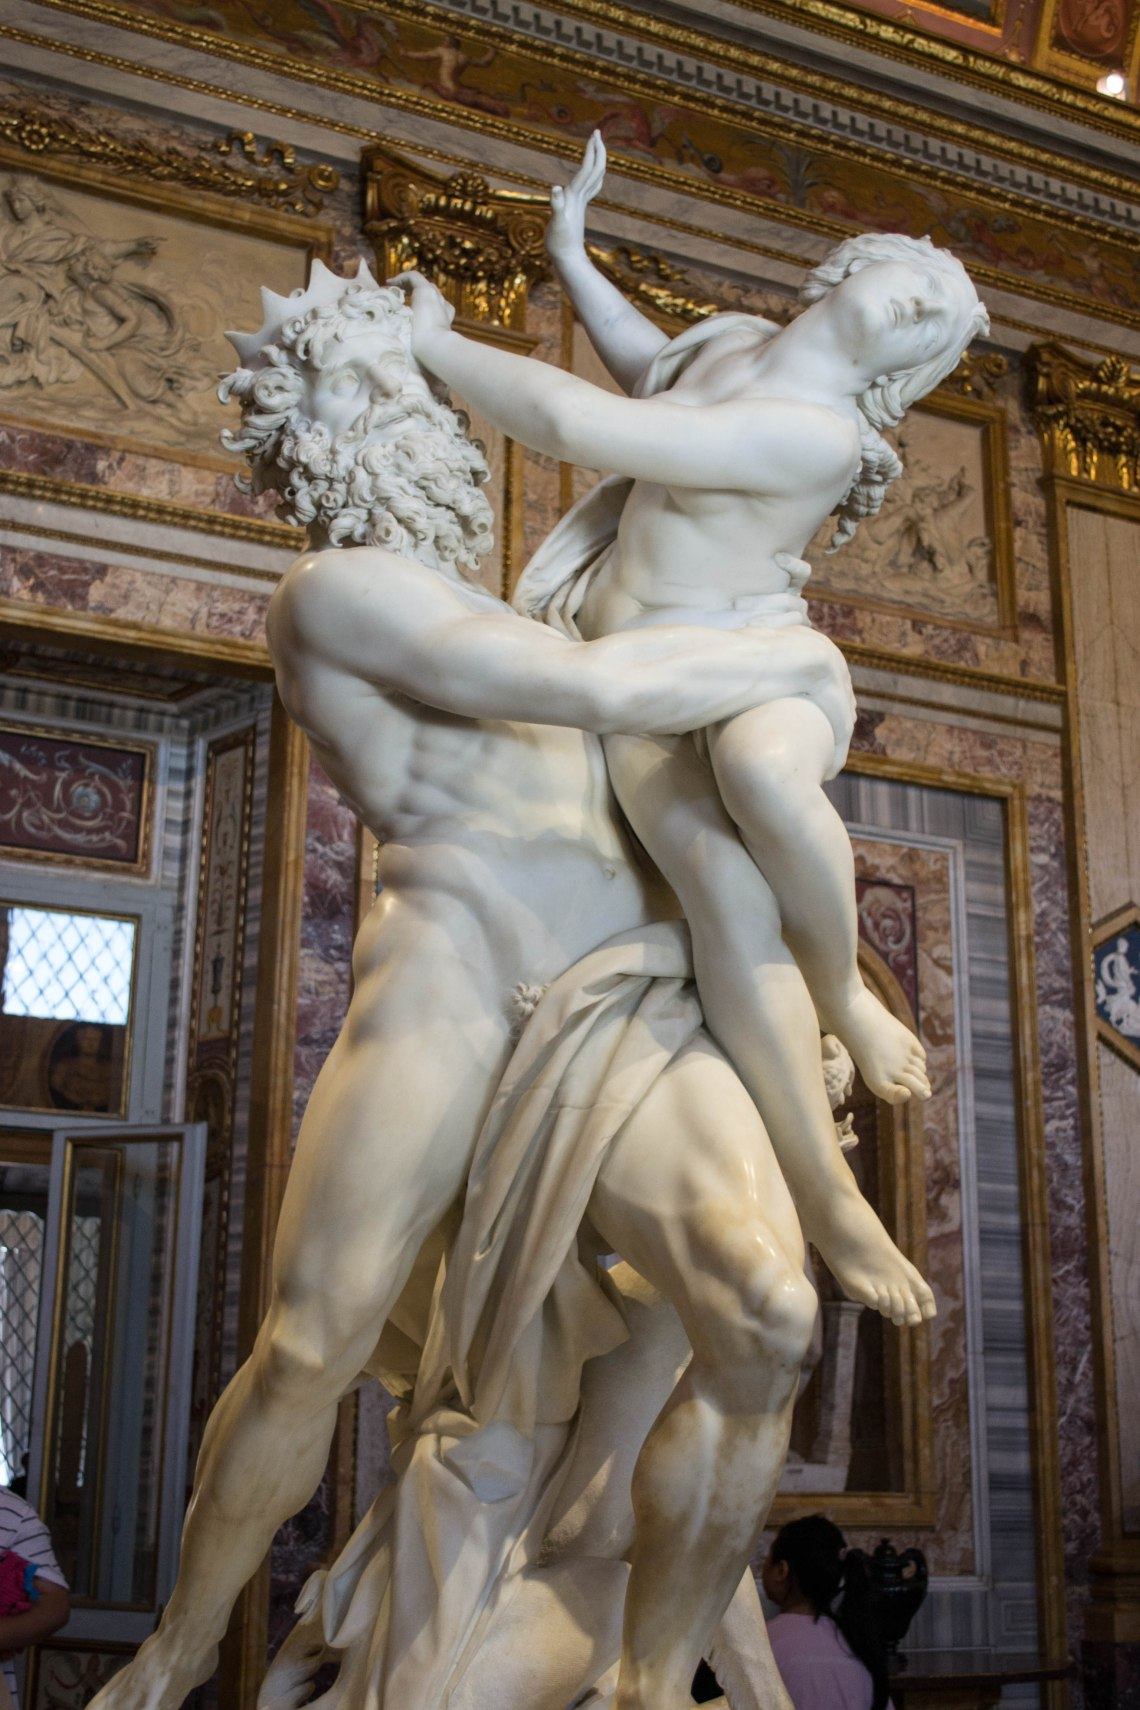 The Rape of Proserpina - Borghese Museum, Rome, Italy